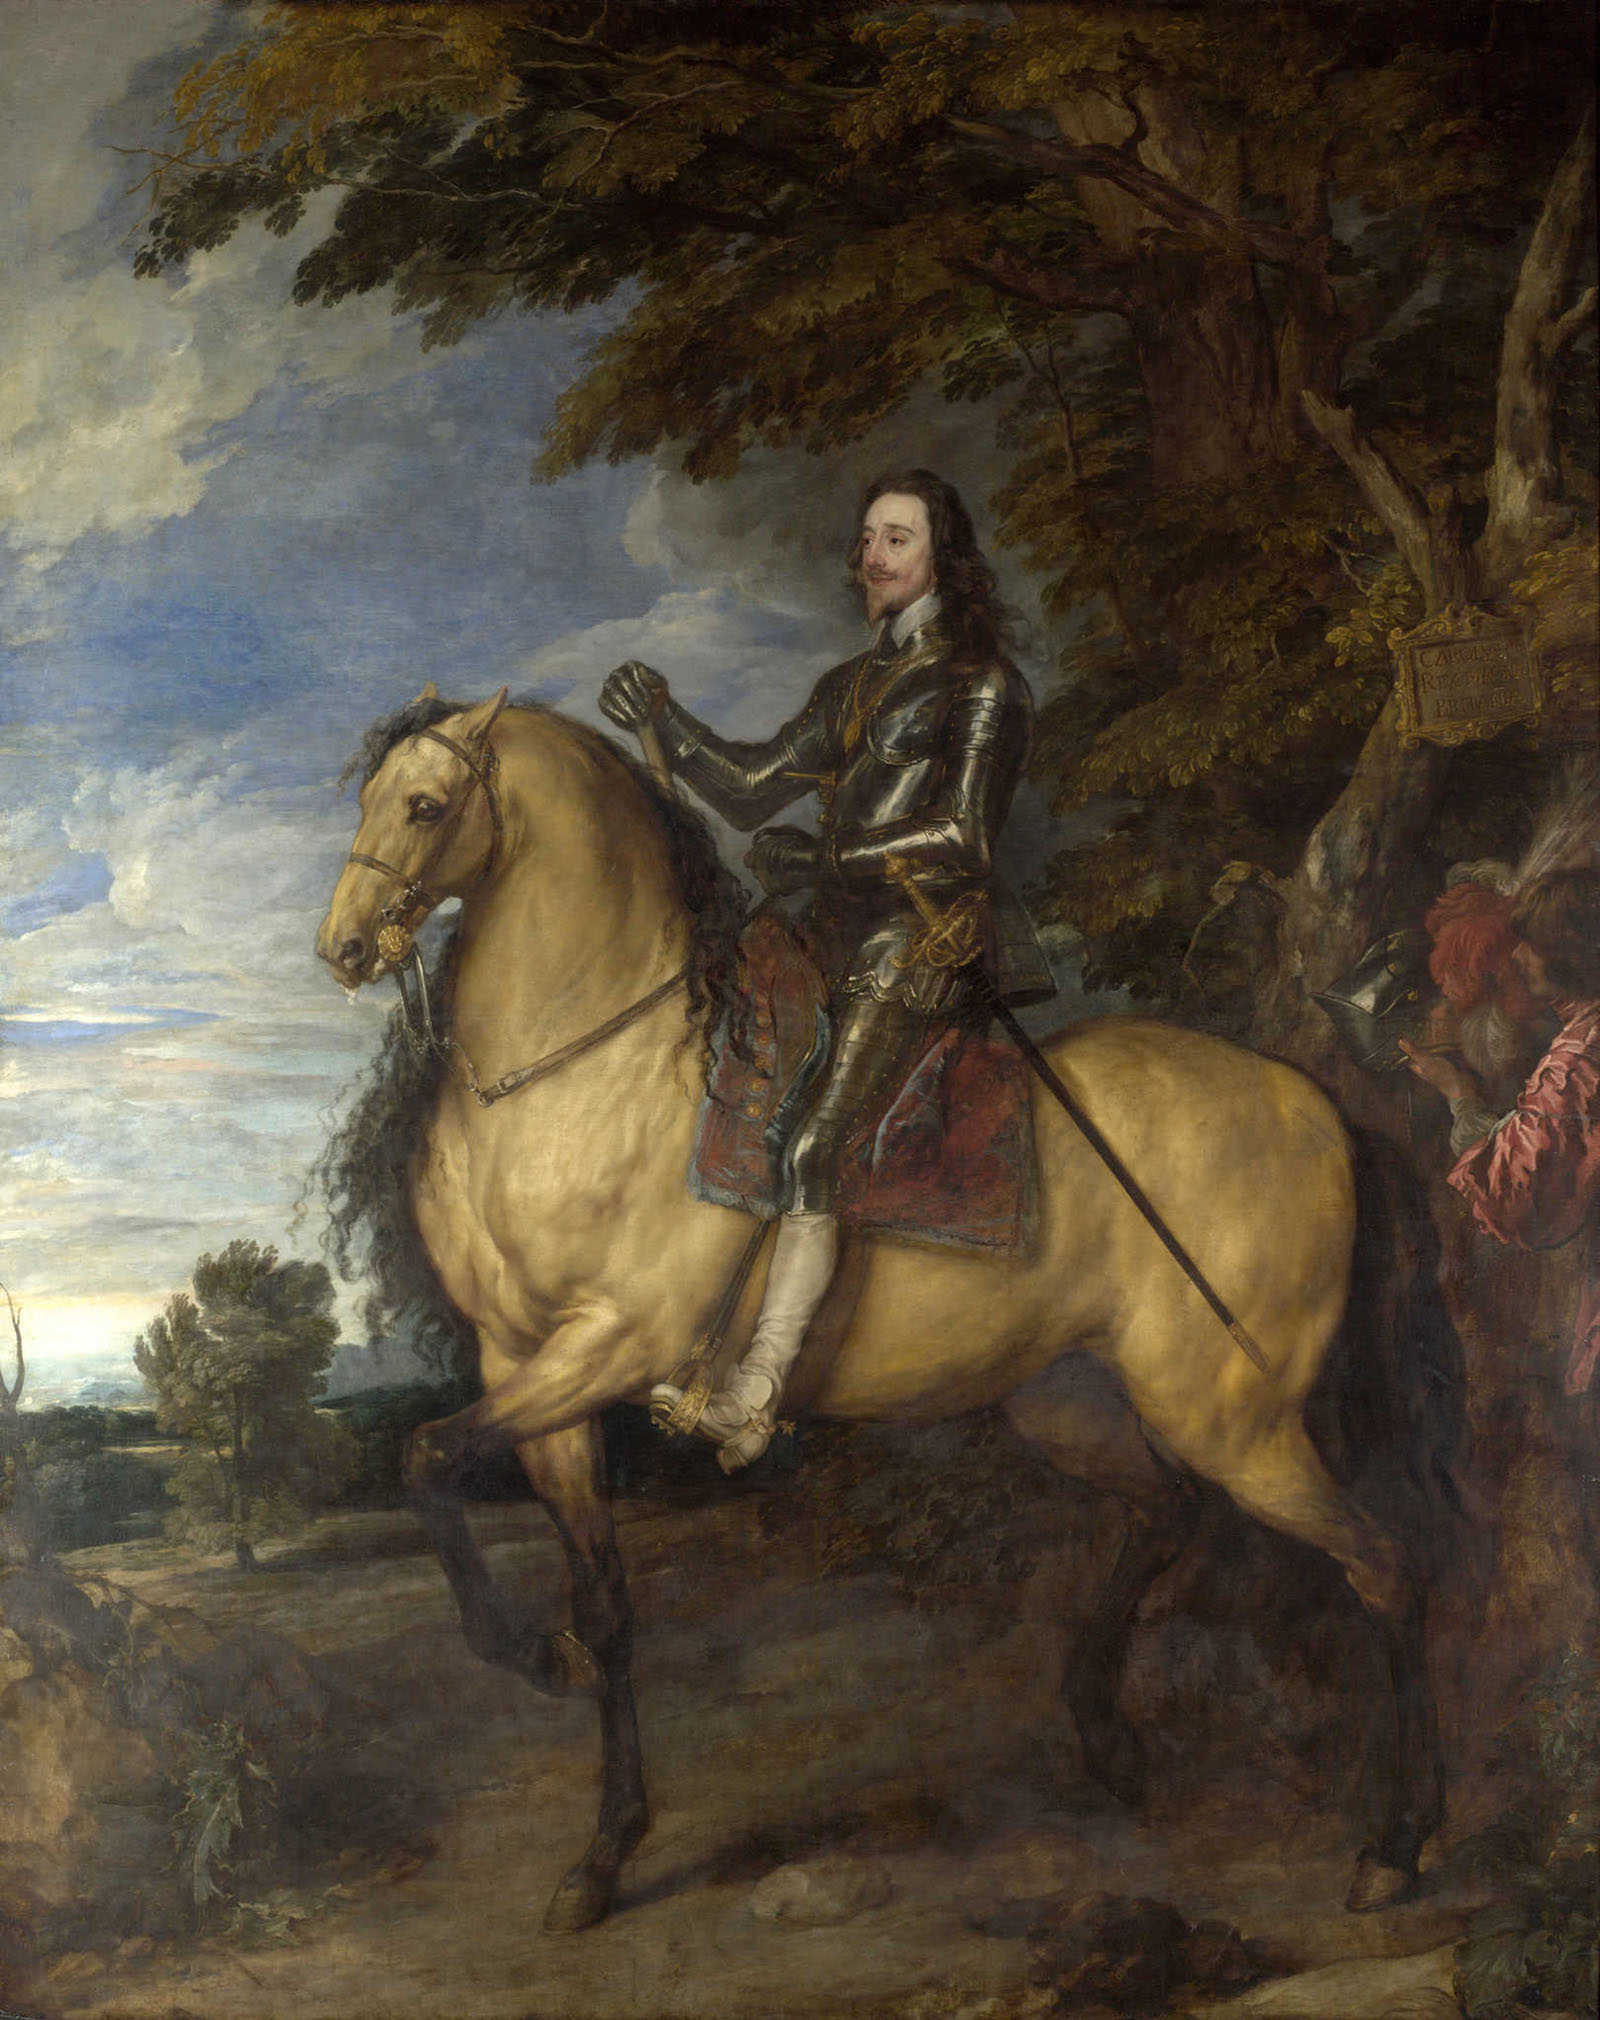 A painting of a man with a mustache, beard, and long brown hair wears armor and sits on a large blonde horse against a background of trees and blue sky.